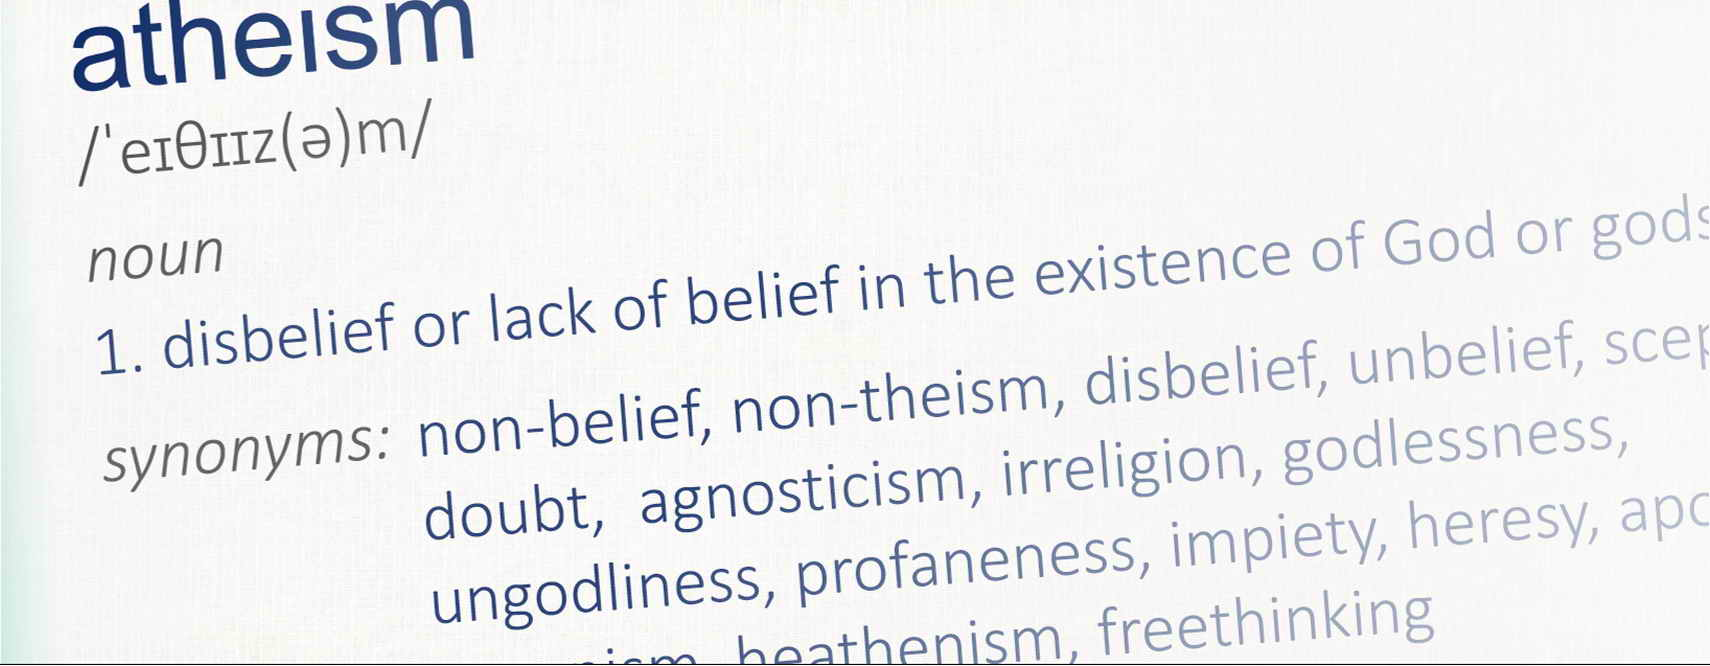 definition atheism - atheist alliance international